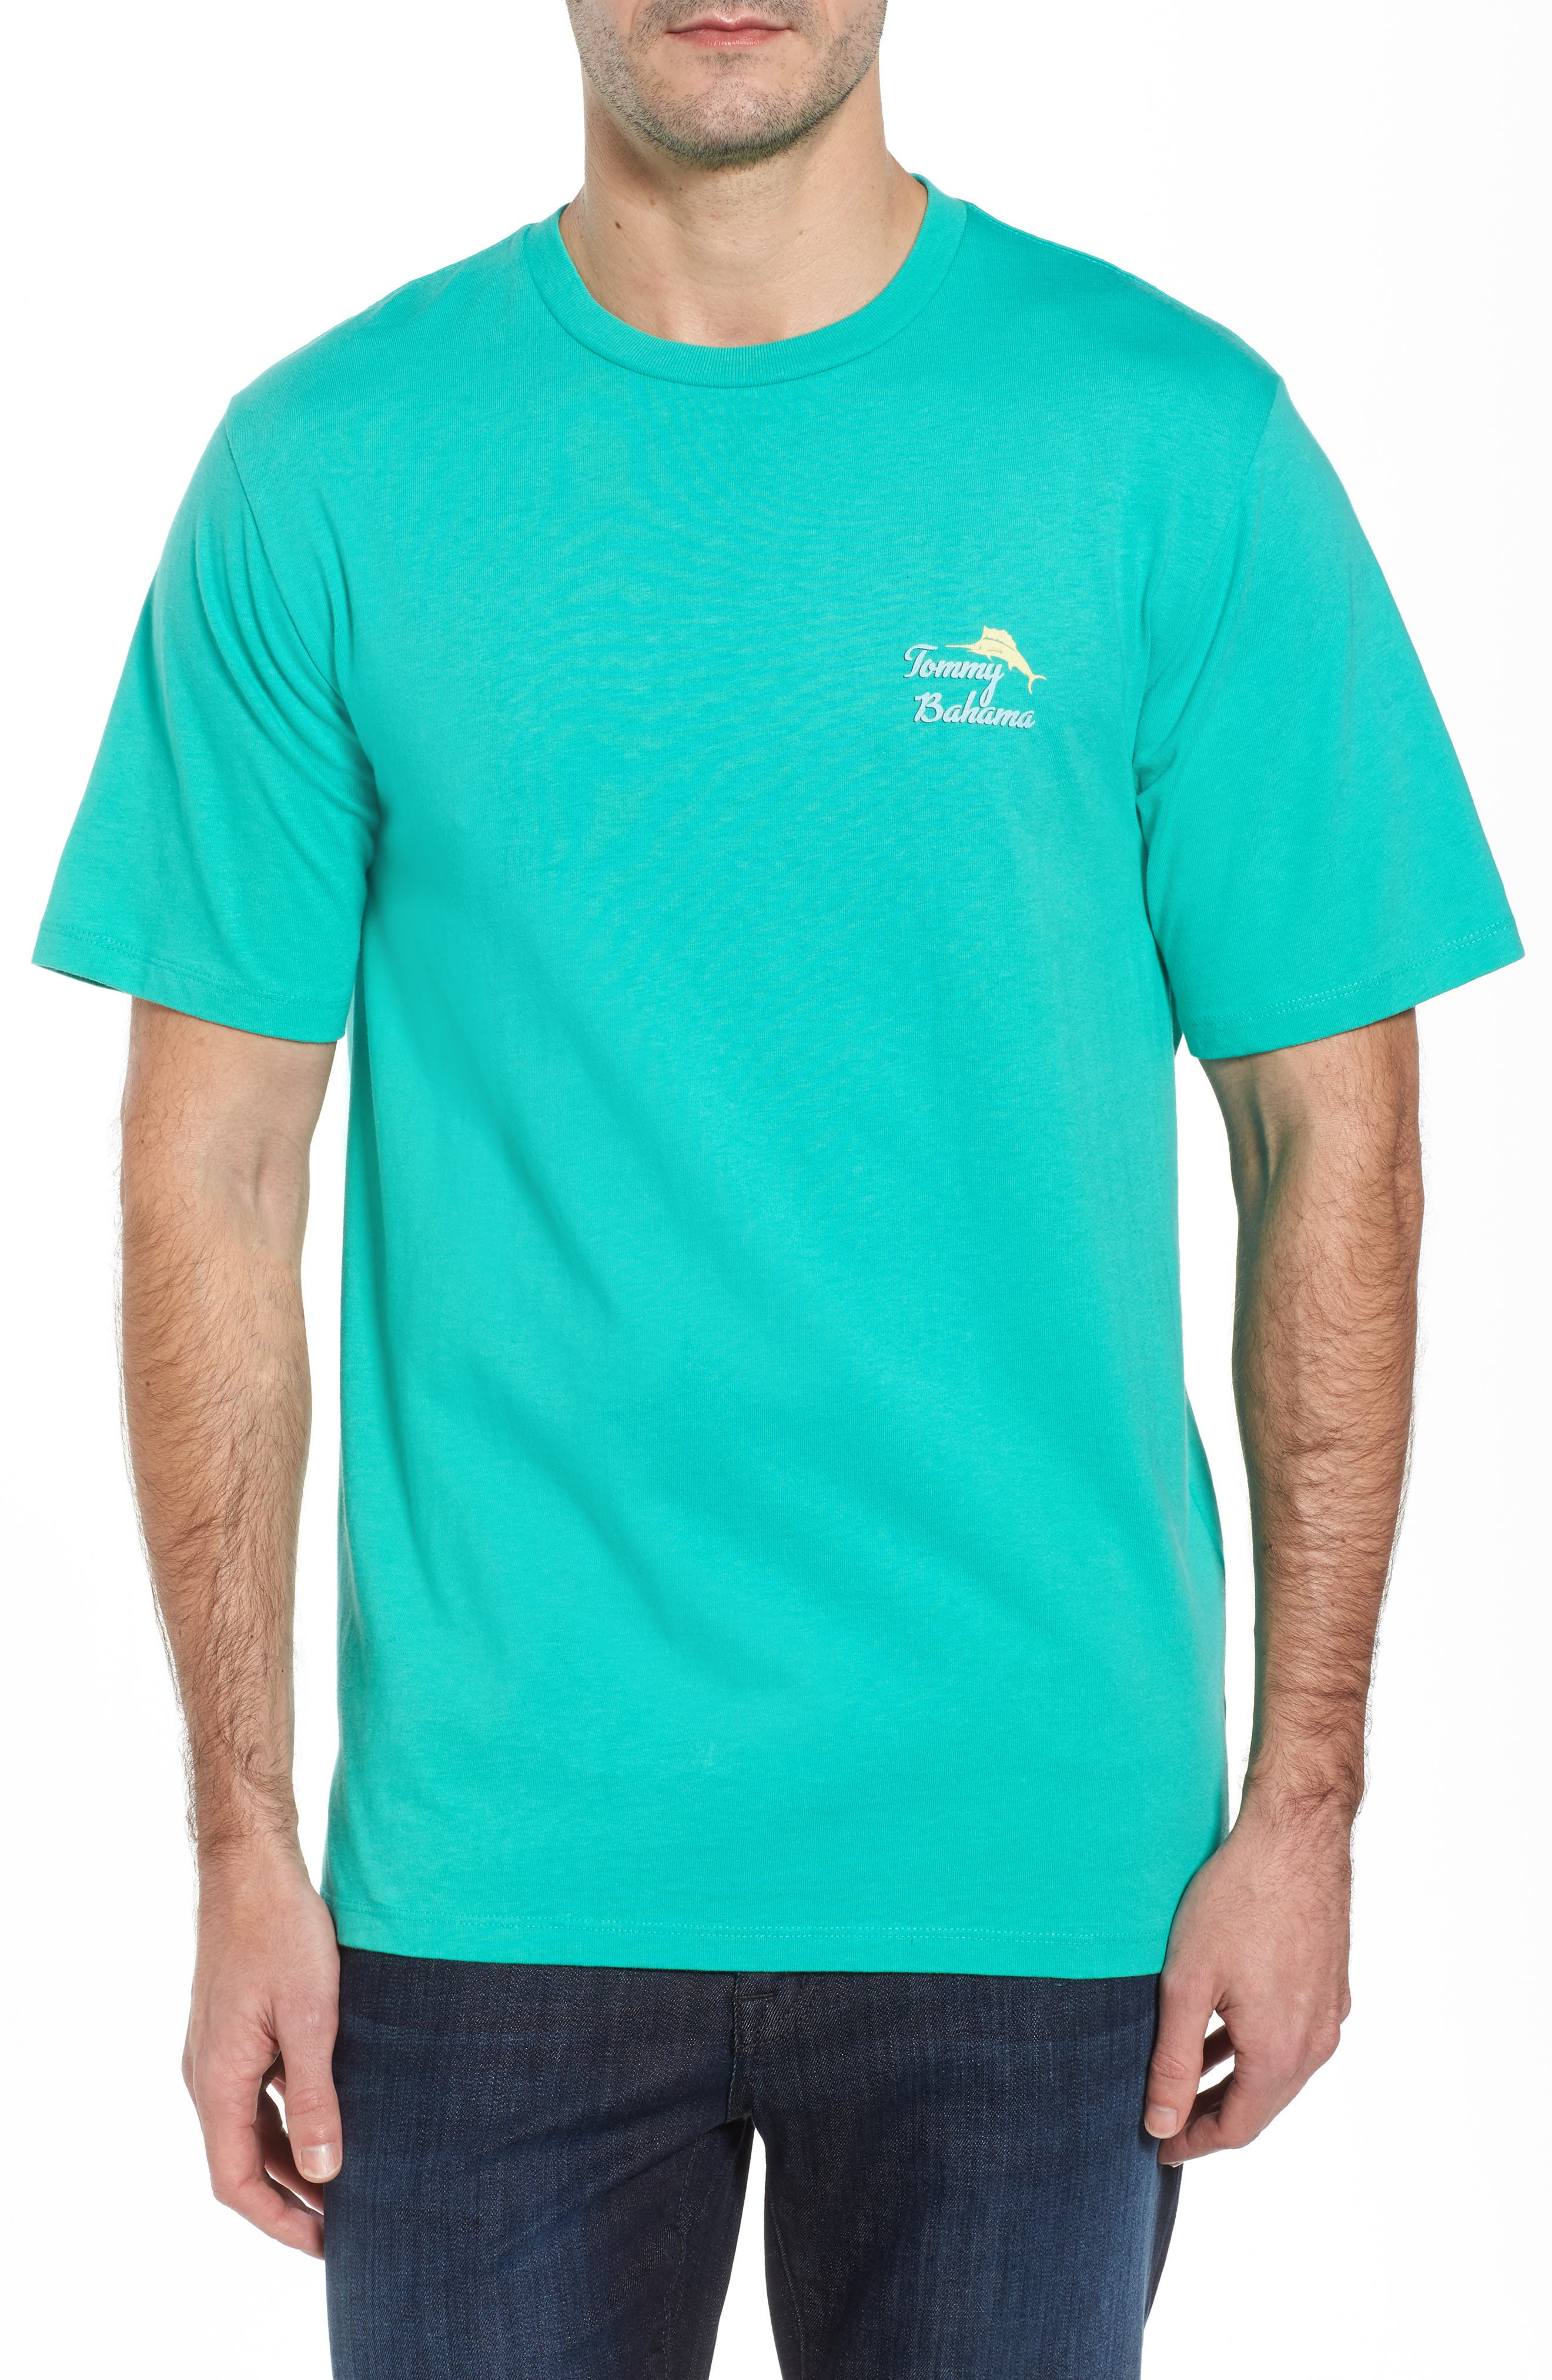 Main Image - Tommy Bahama First Class Seat T-Shirt